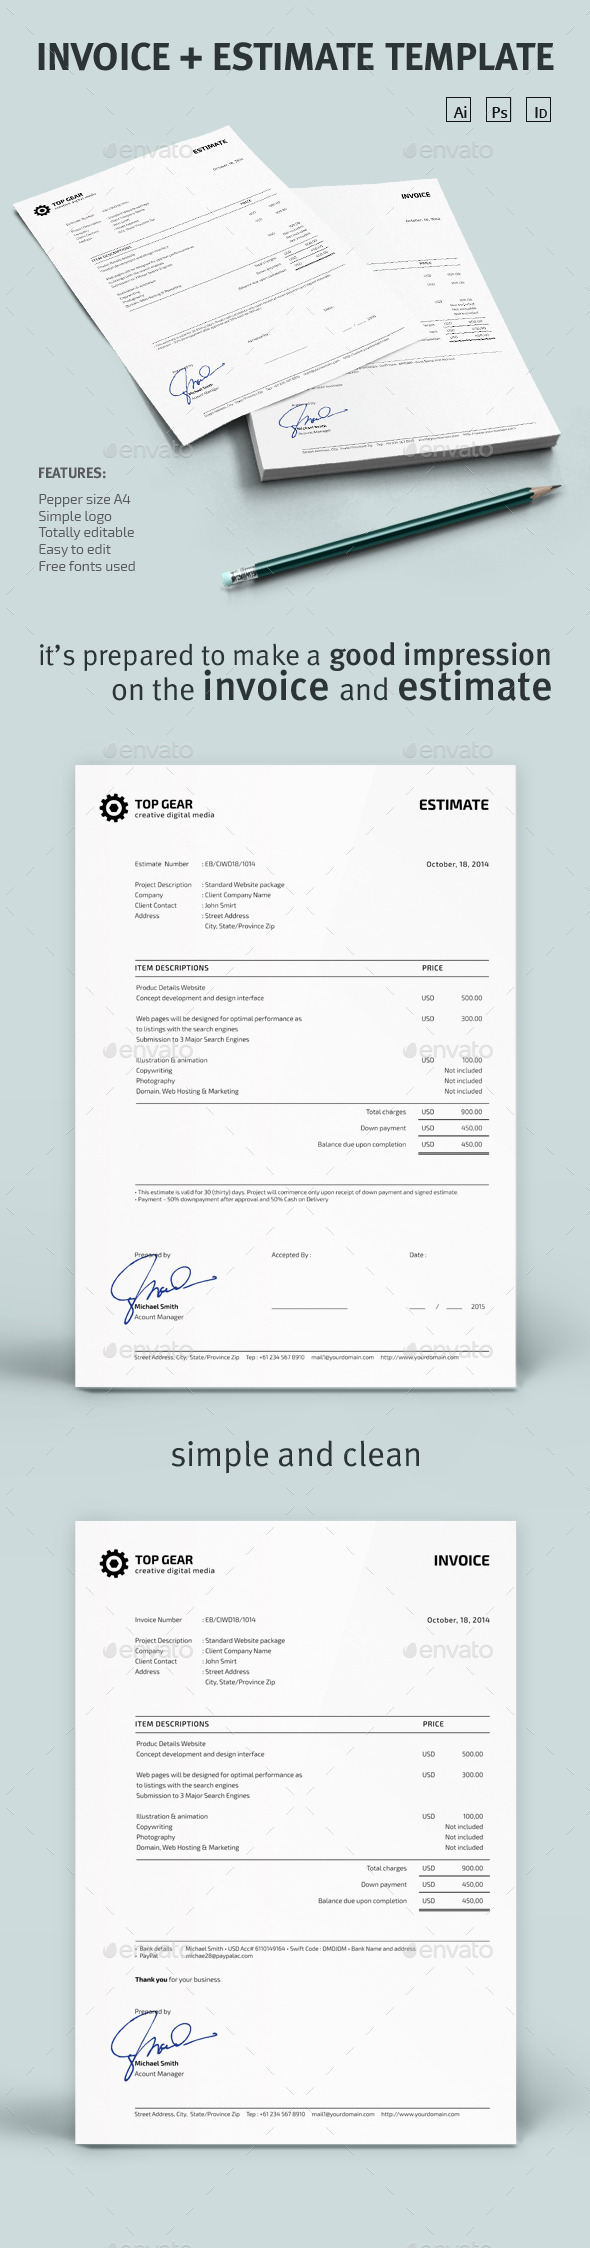 Invoice + Estimate Template - Proposals & Invoices Stationery